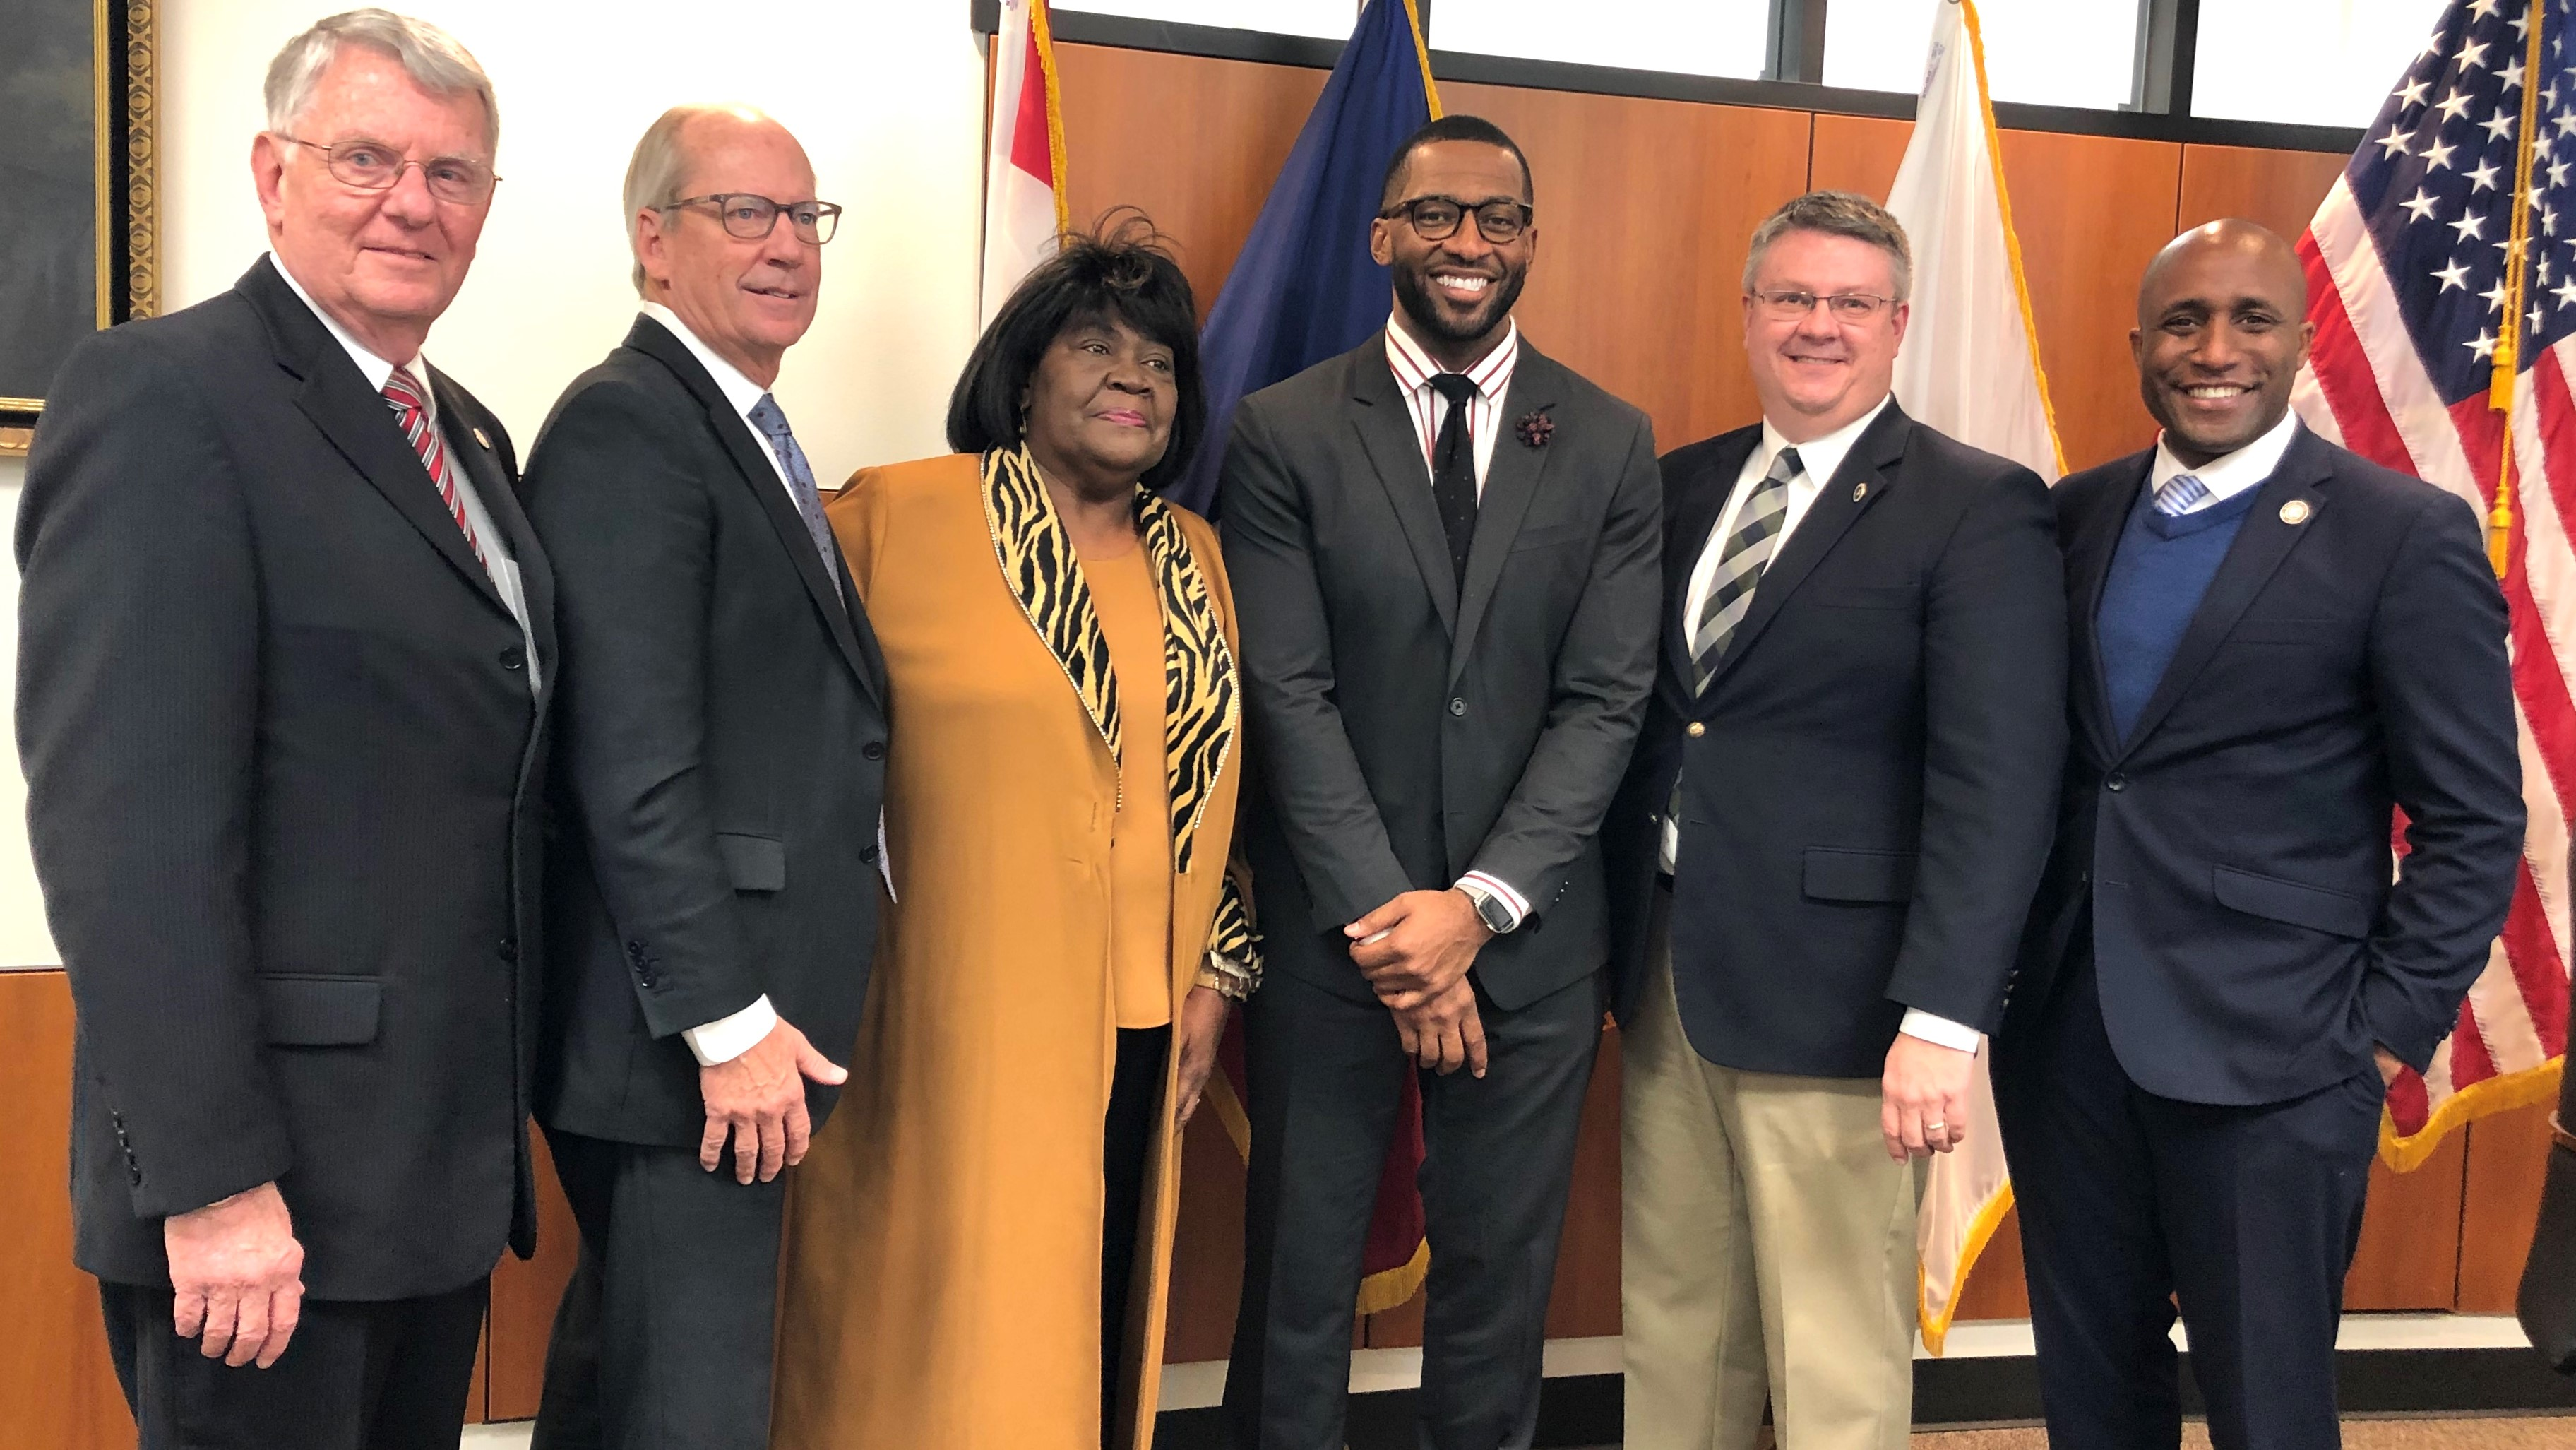 Mayor Quinton Lucas Appoints New Parks & Recreation Board of Commissioners